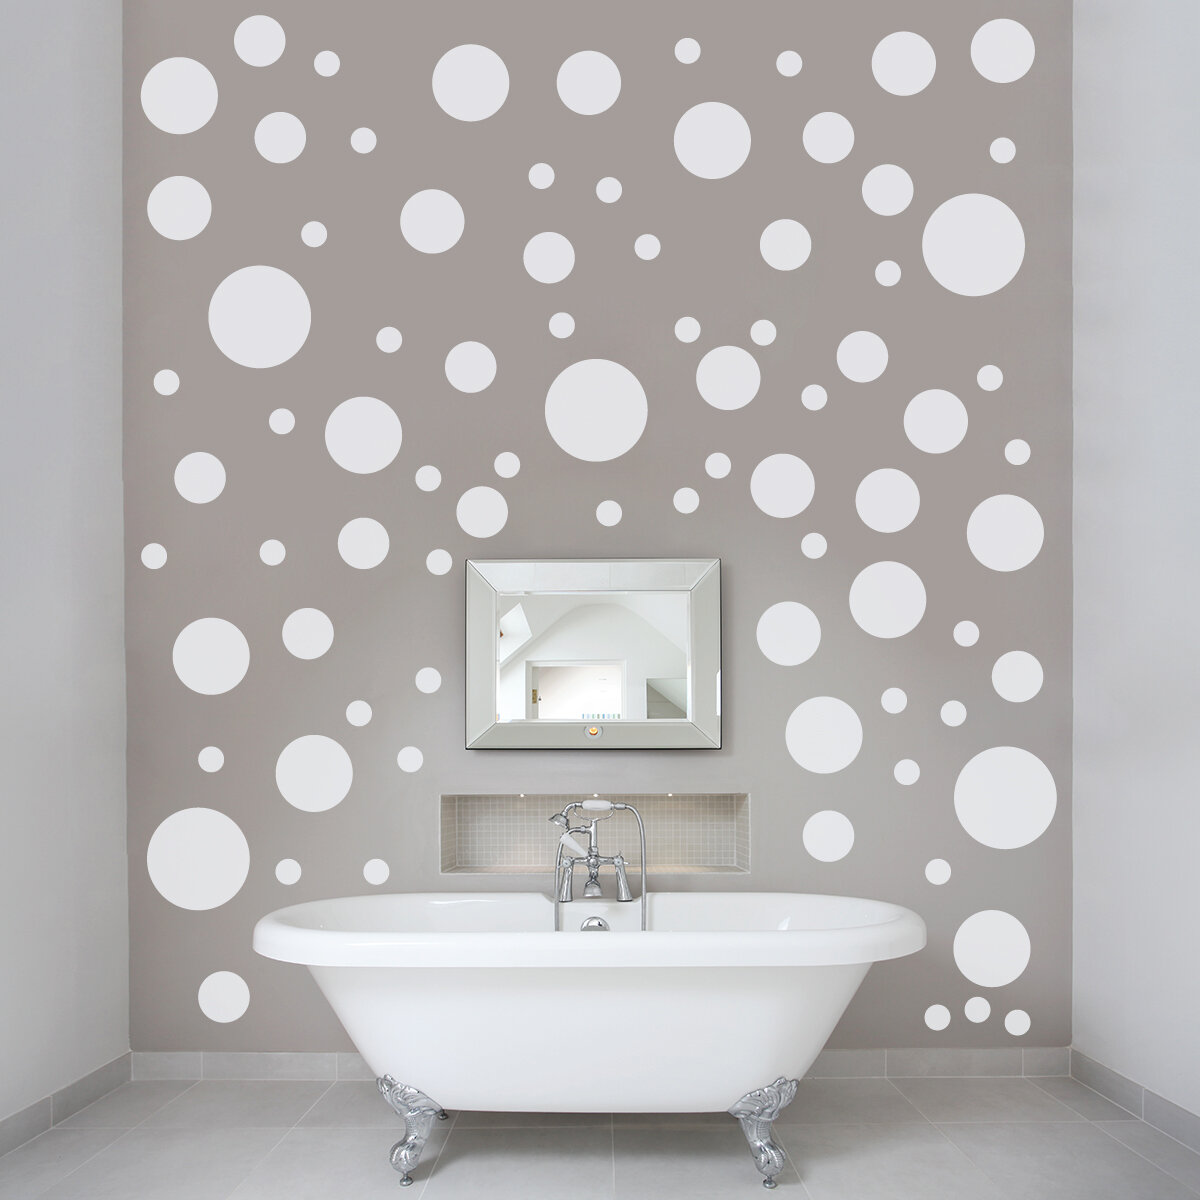 Wallums Wall Decor Polka Dots Wall Decal Reviews Wayfair